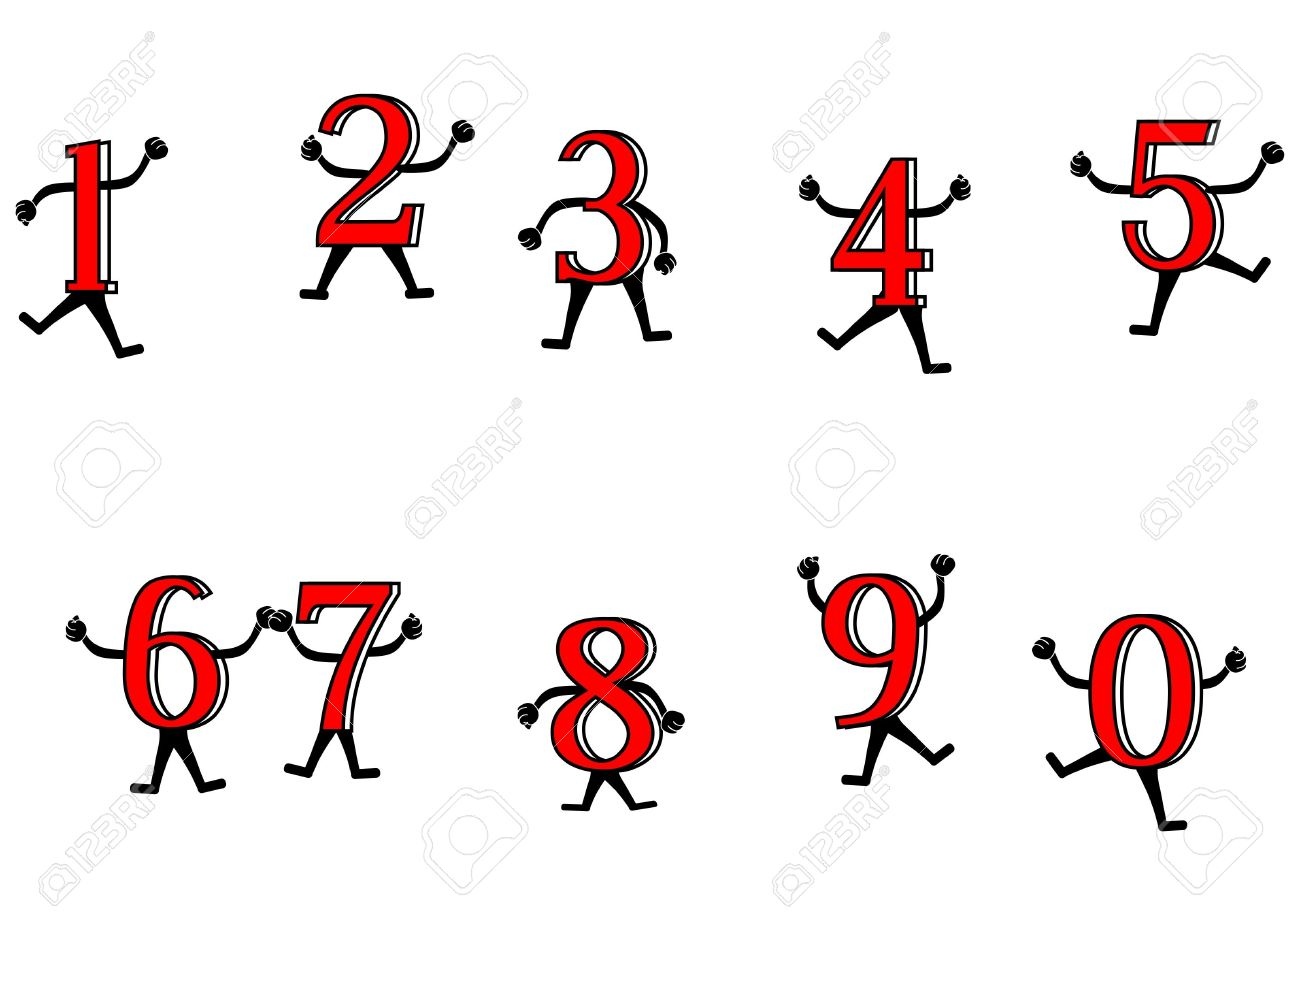 Fun with numbers. Primary numbers, dancing and playing around, to excite the learning of them. Stock Vector - 12491218